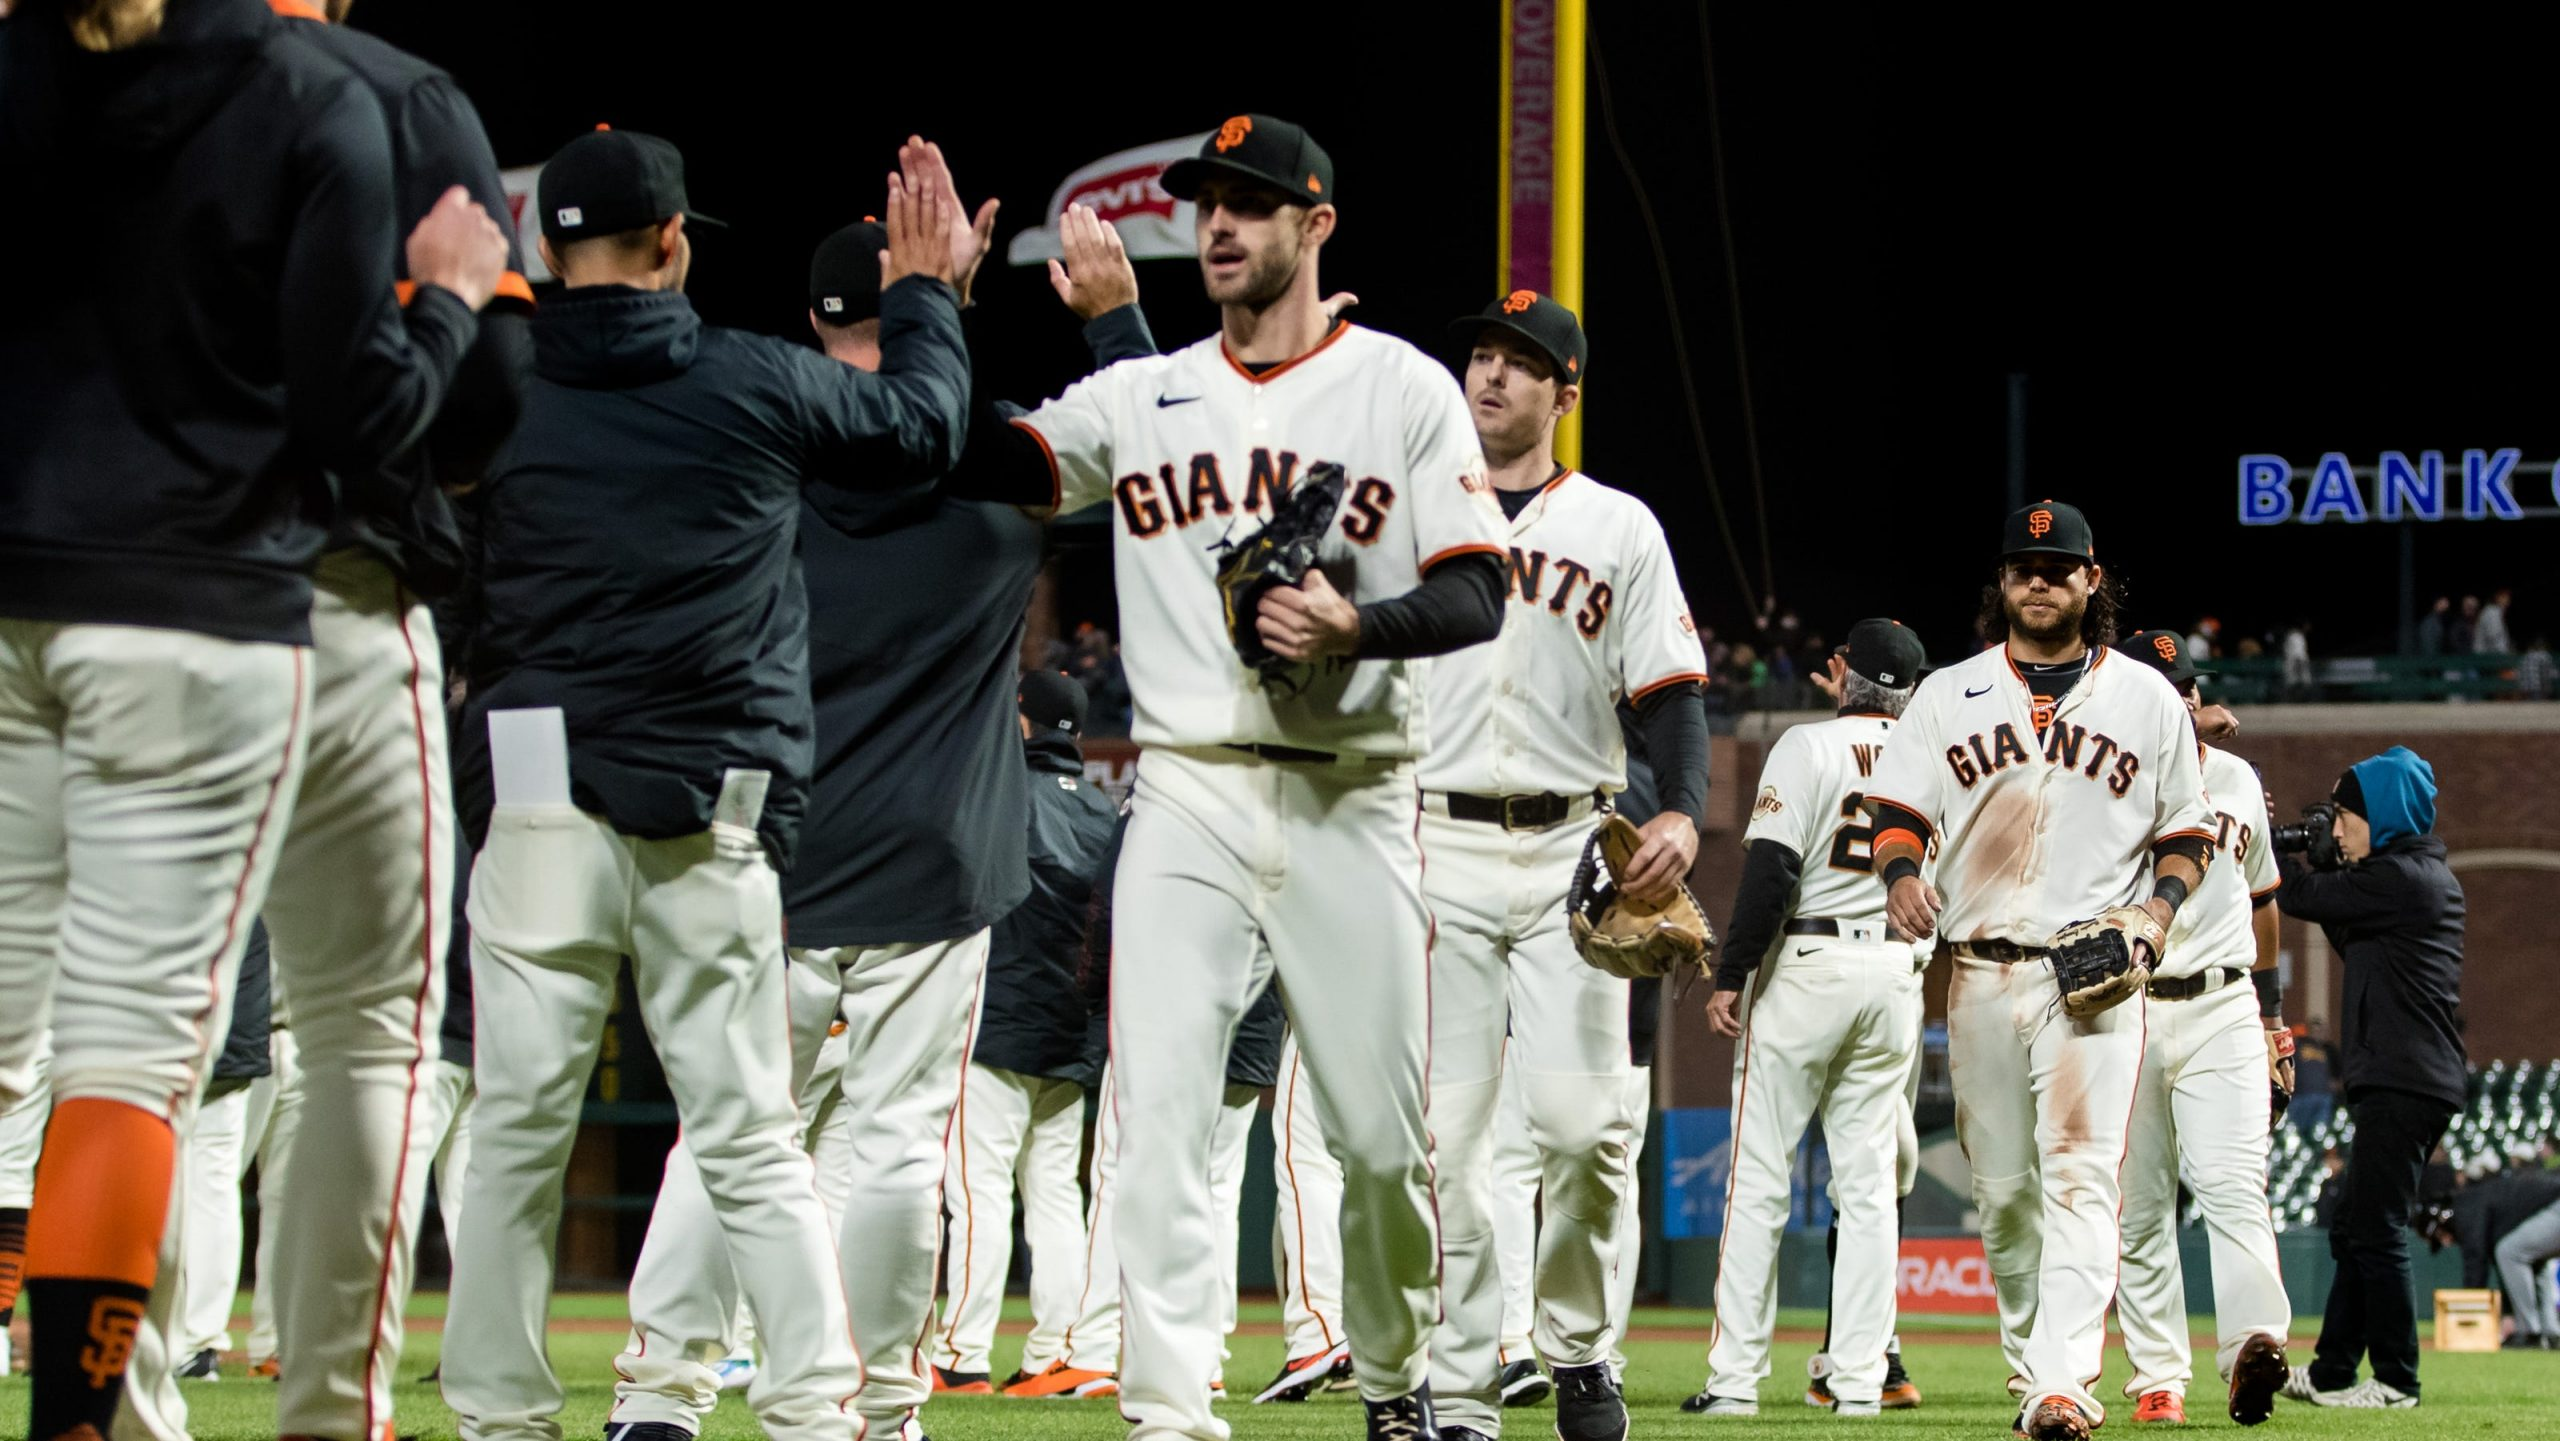 The reasons the Giants can win the World Series